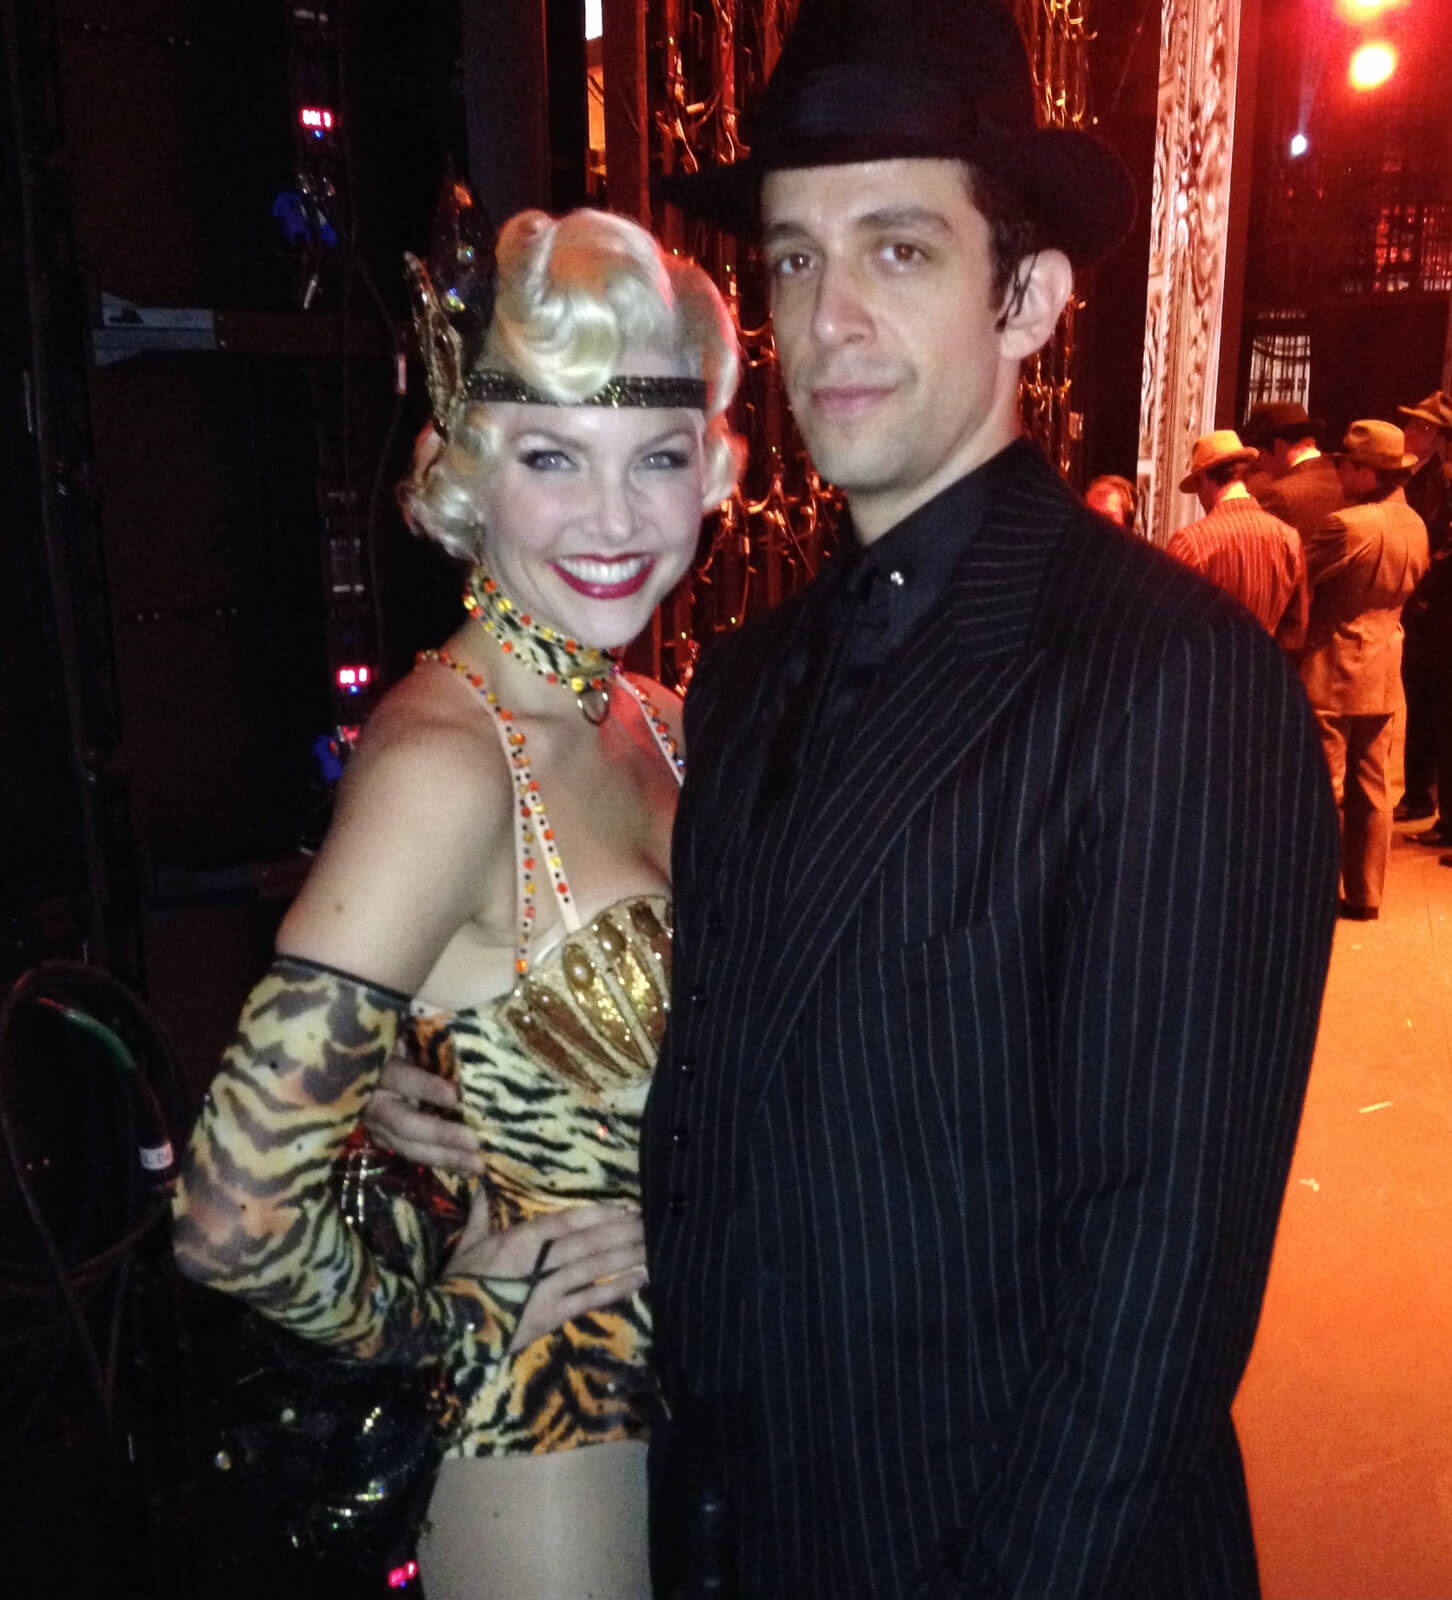 Amanda Kloots in a showgirl outfit and Nick Cordero in a black suit standing backstage in the wing.